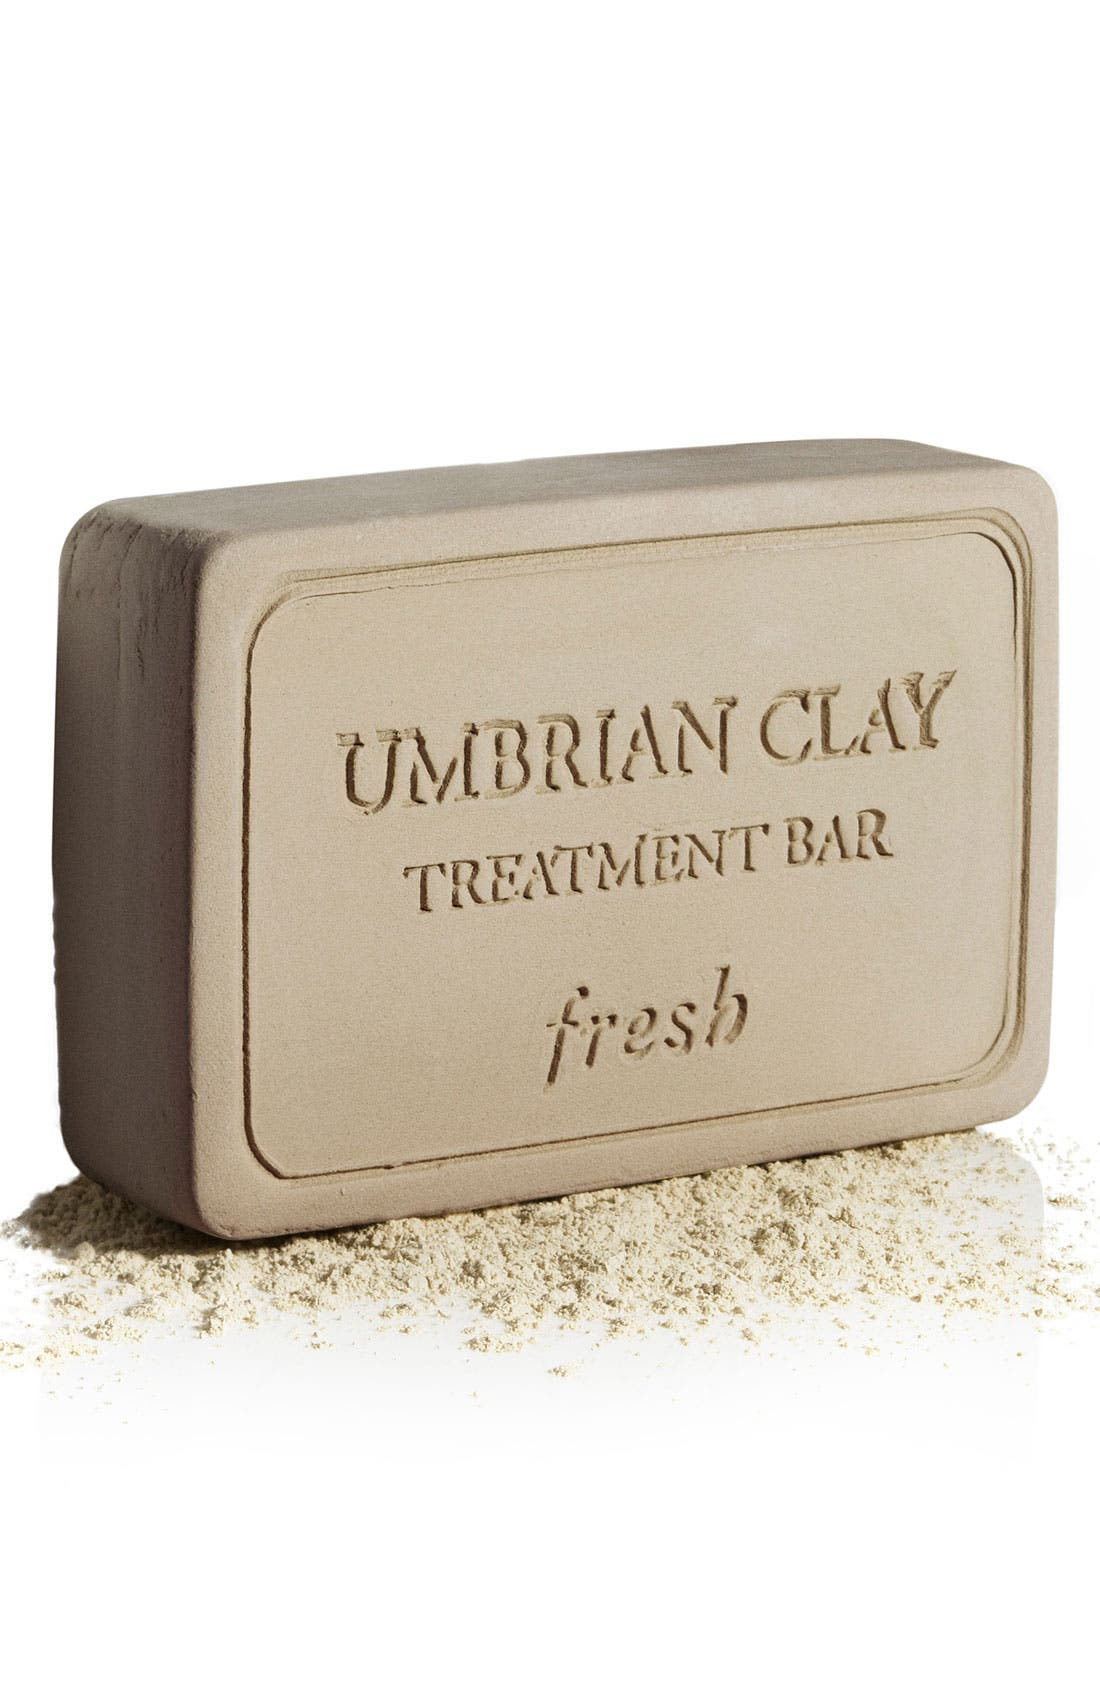 Fresh® Umbrian Clay Treatment Bar